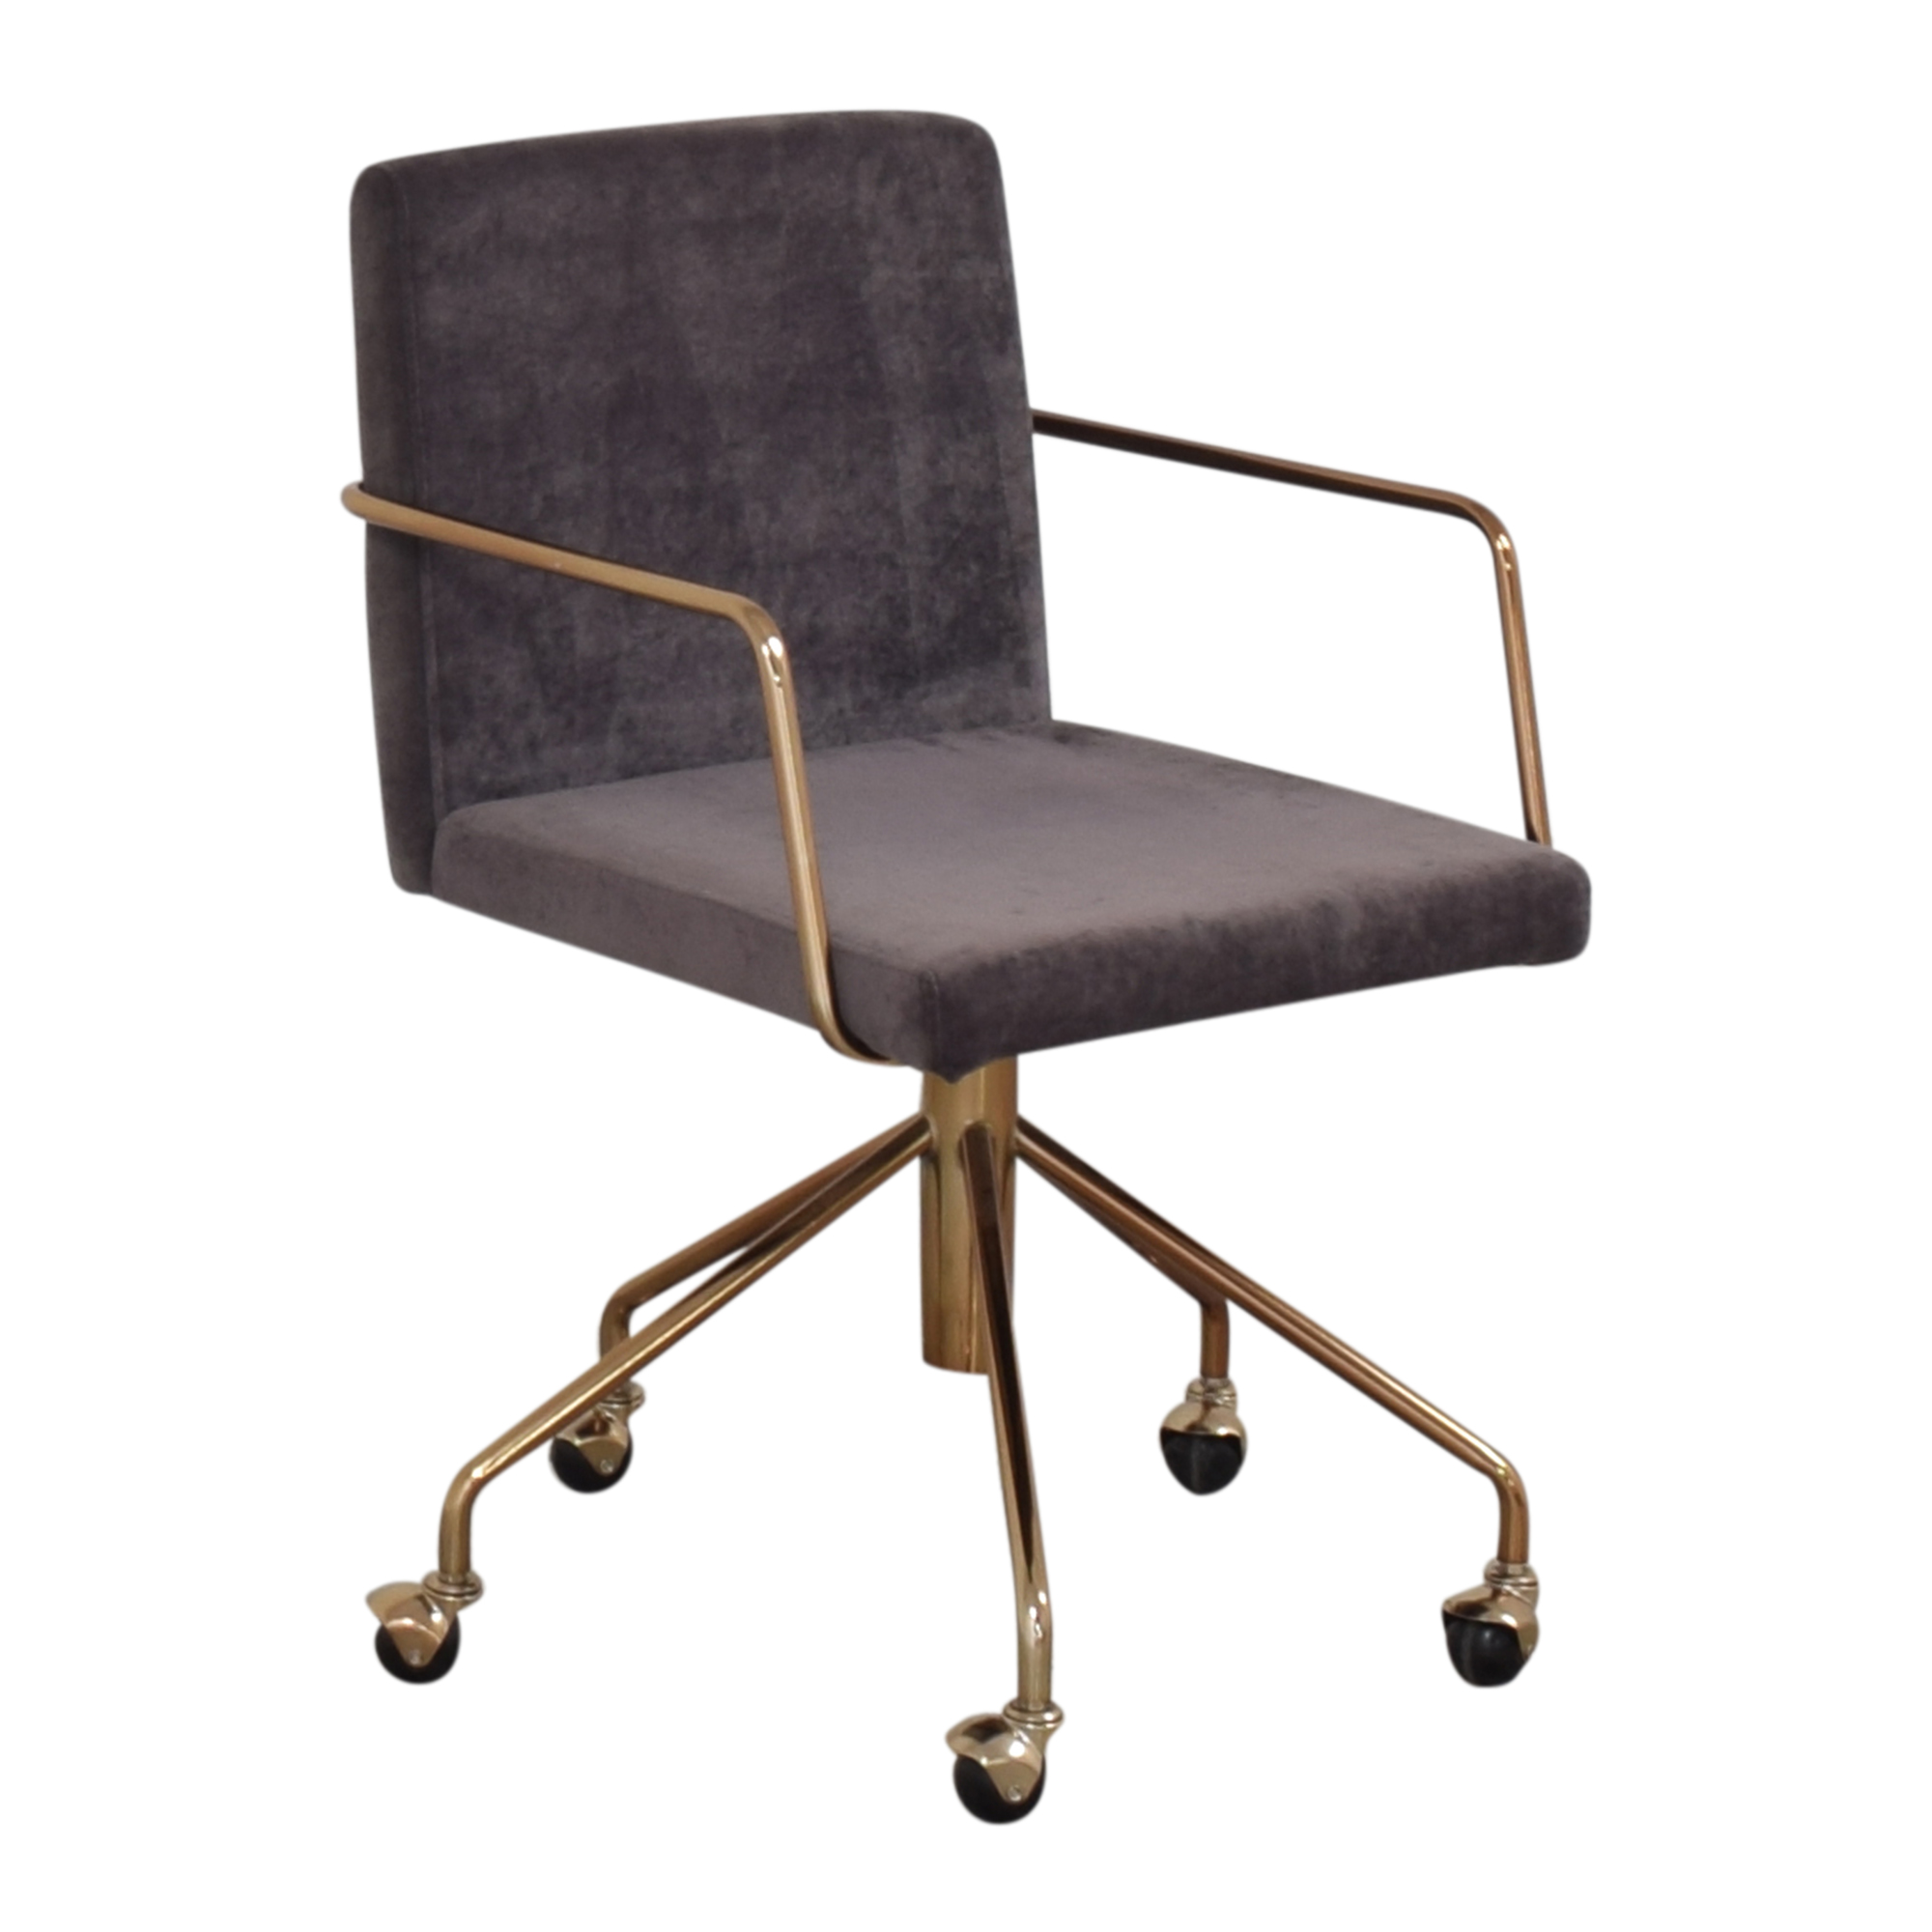 CB2 Rouka Office Chair / Home Office Chairs